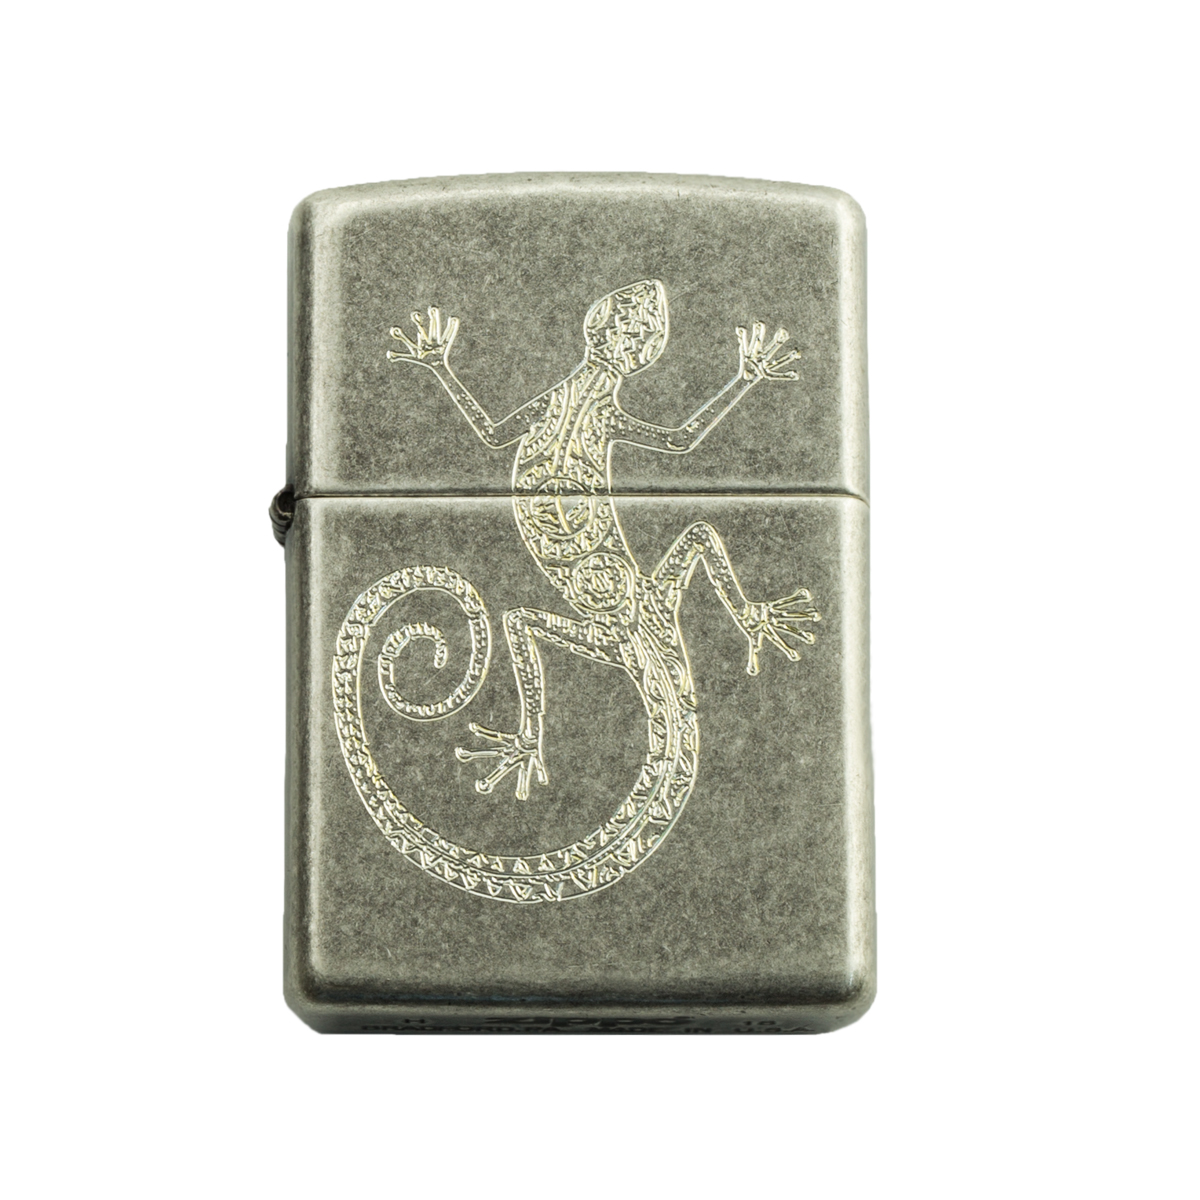 zippo-bac-co-antique-khac-hoa-van-than-lan-2